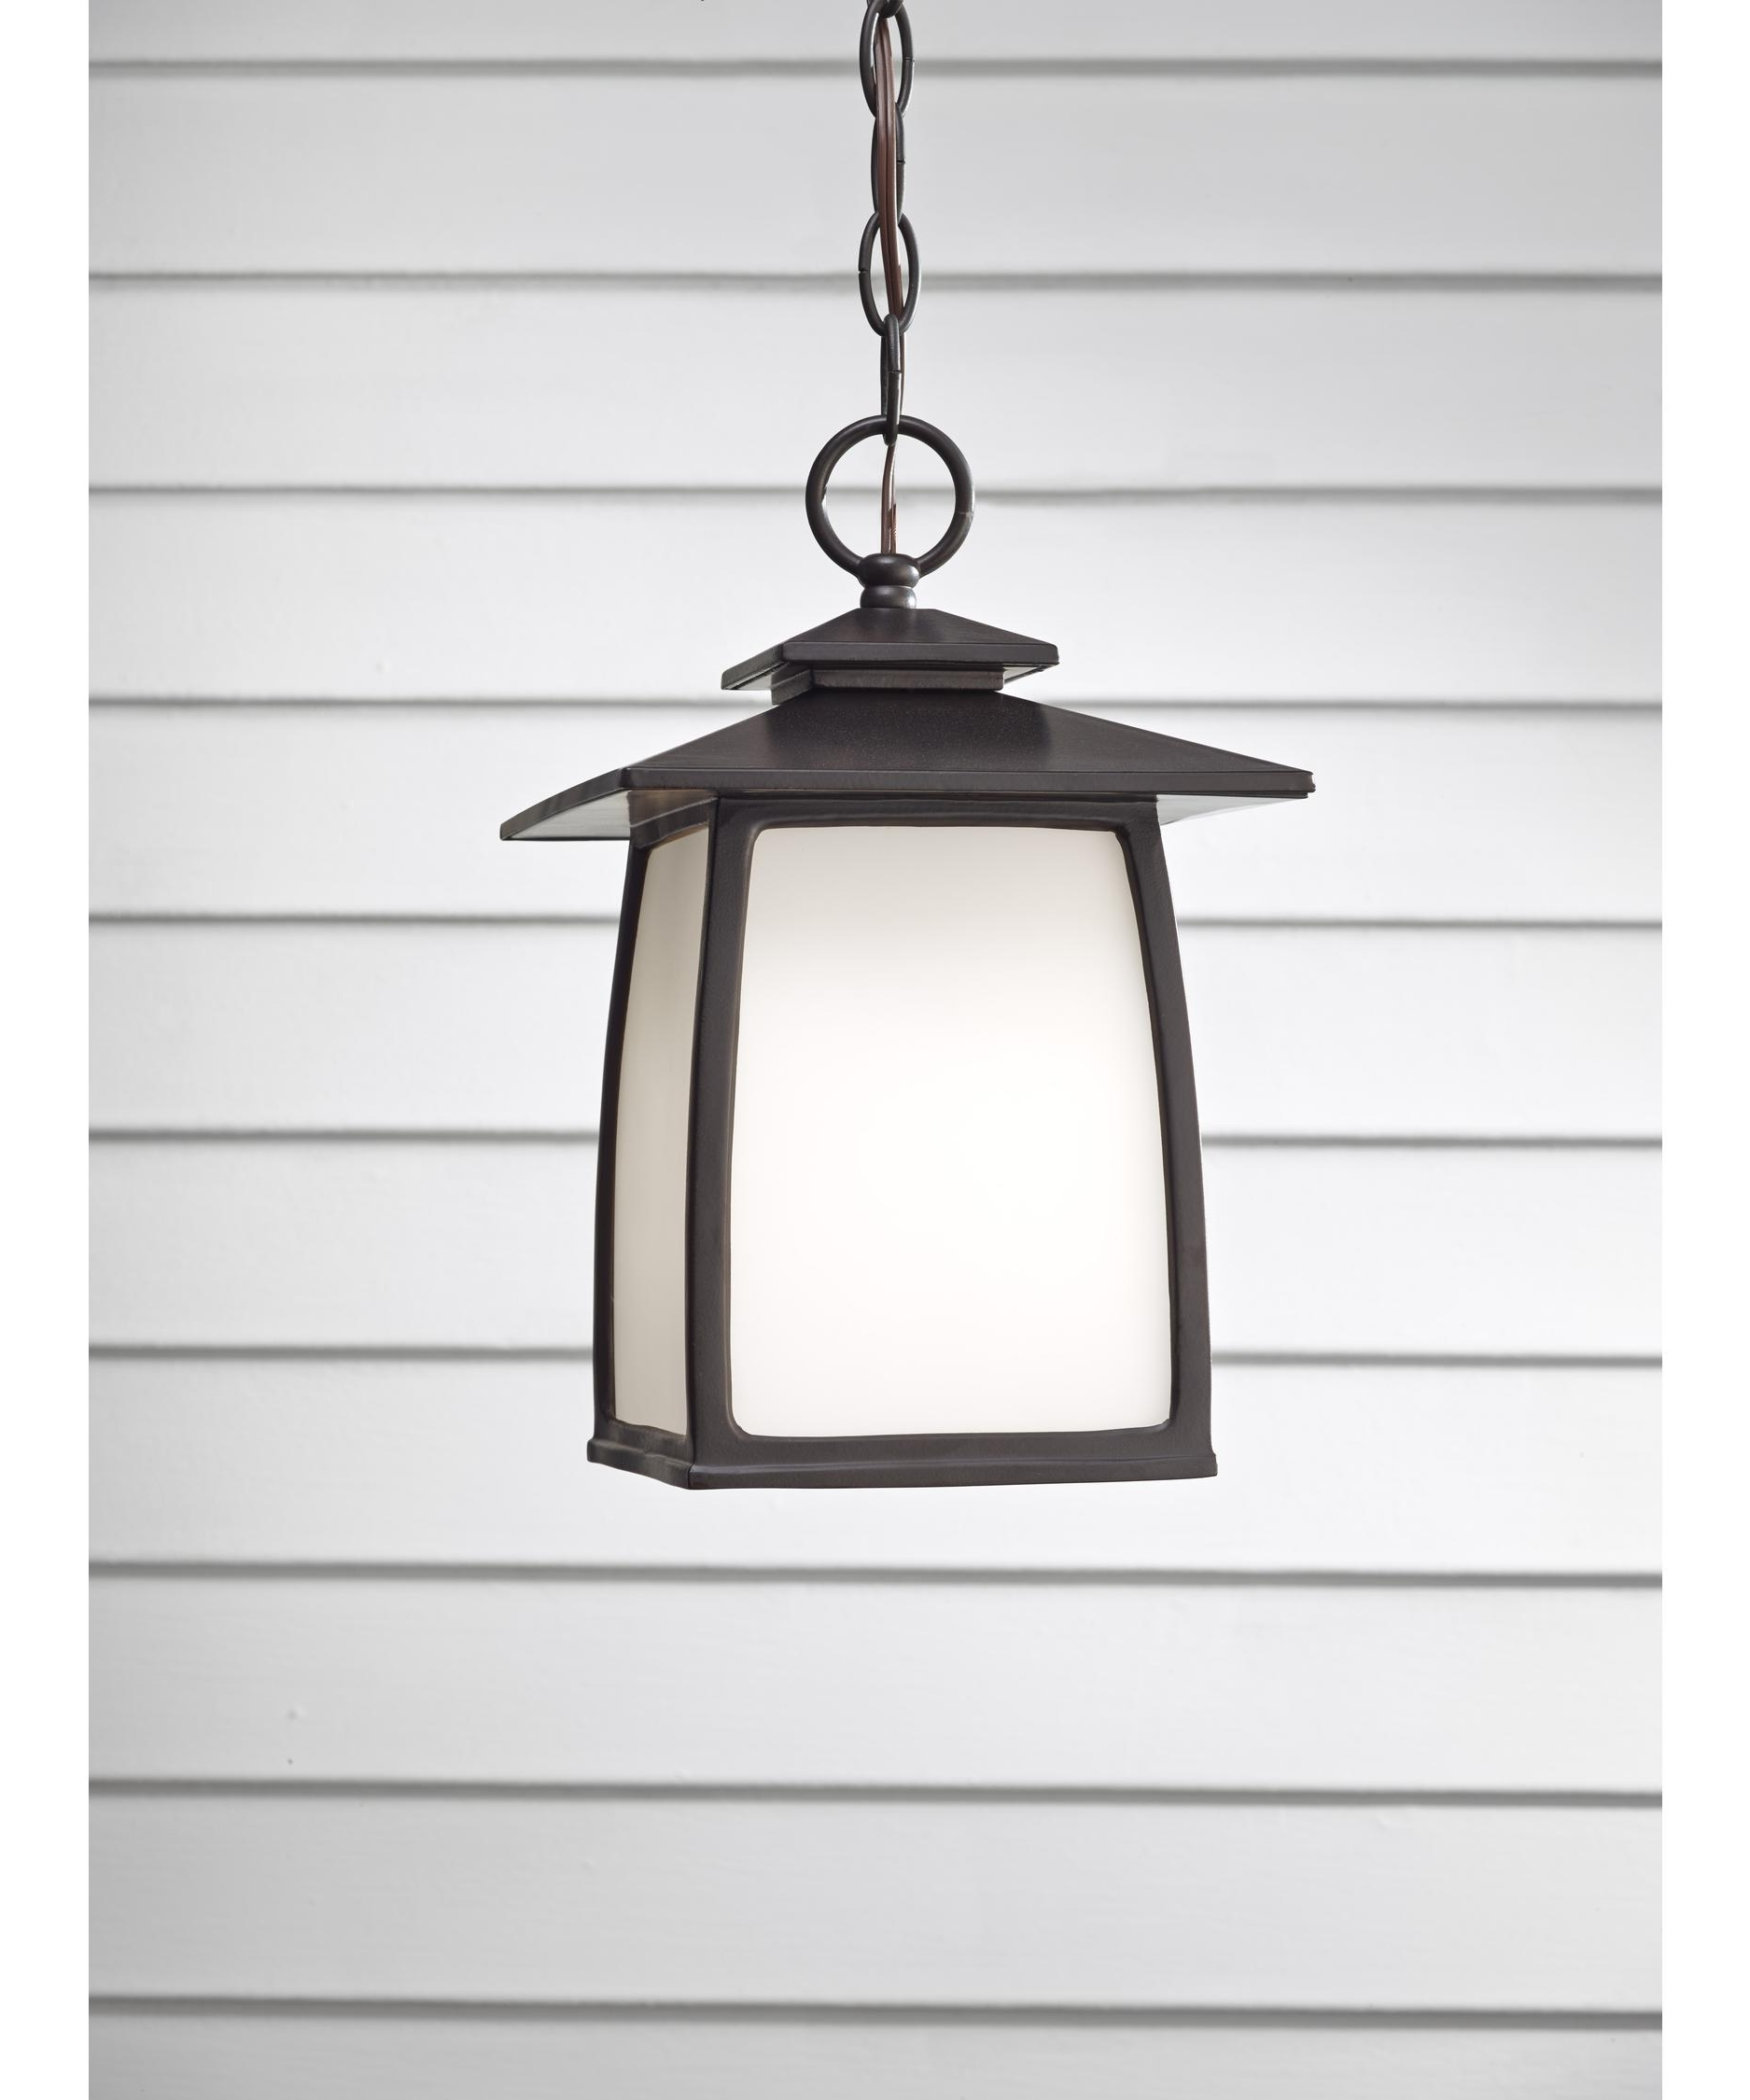 Fashionable Battery Powered Outdoor Hanging Lanterns – Outdoor Designs Intended For Outdoor Hanging Lanterns With Battery Operated (View 4 of 20)